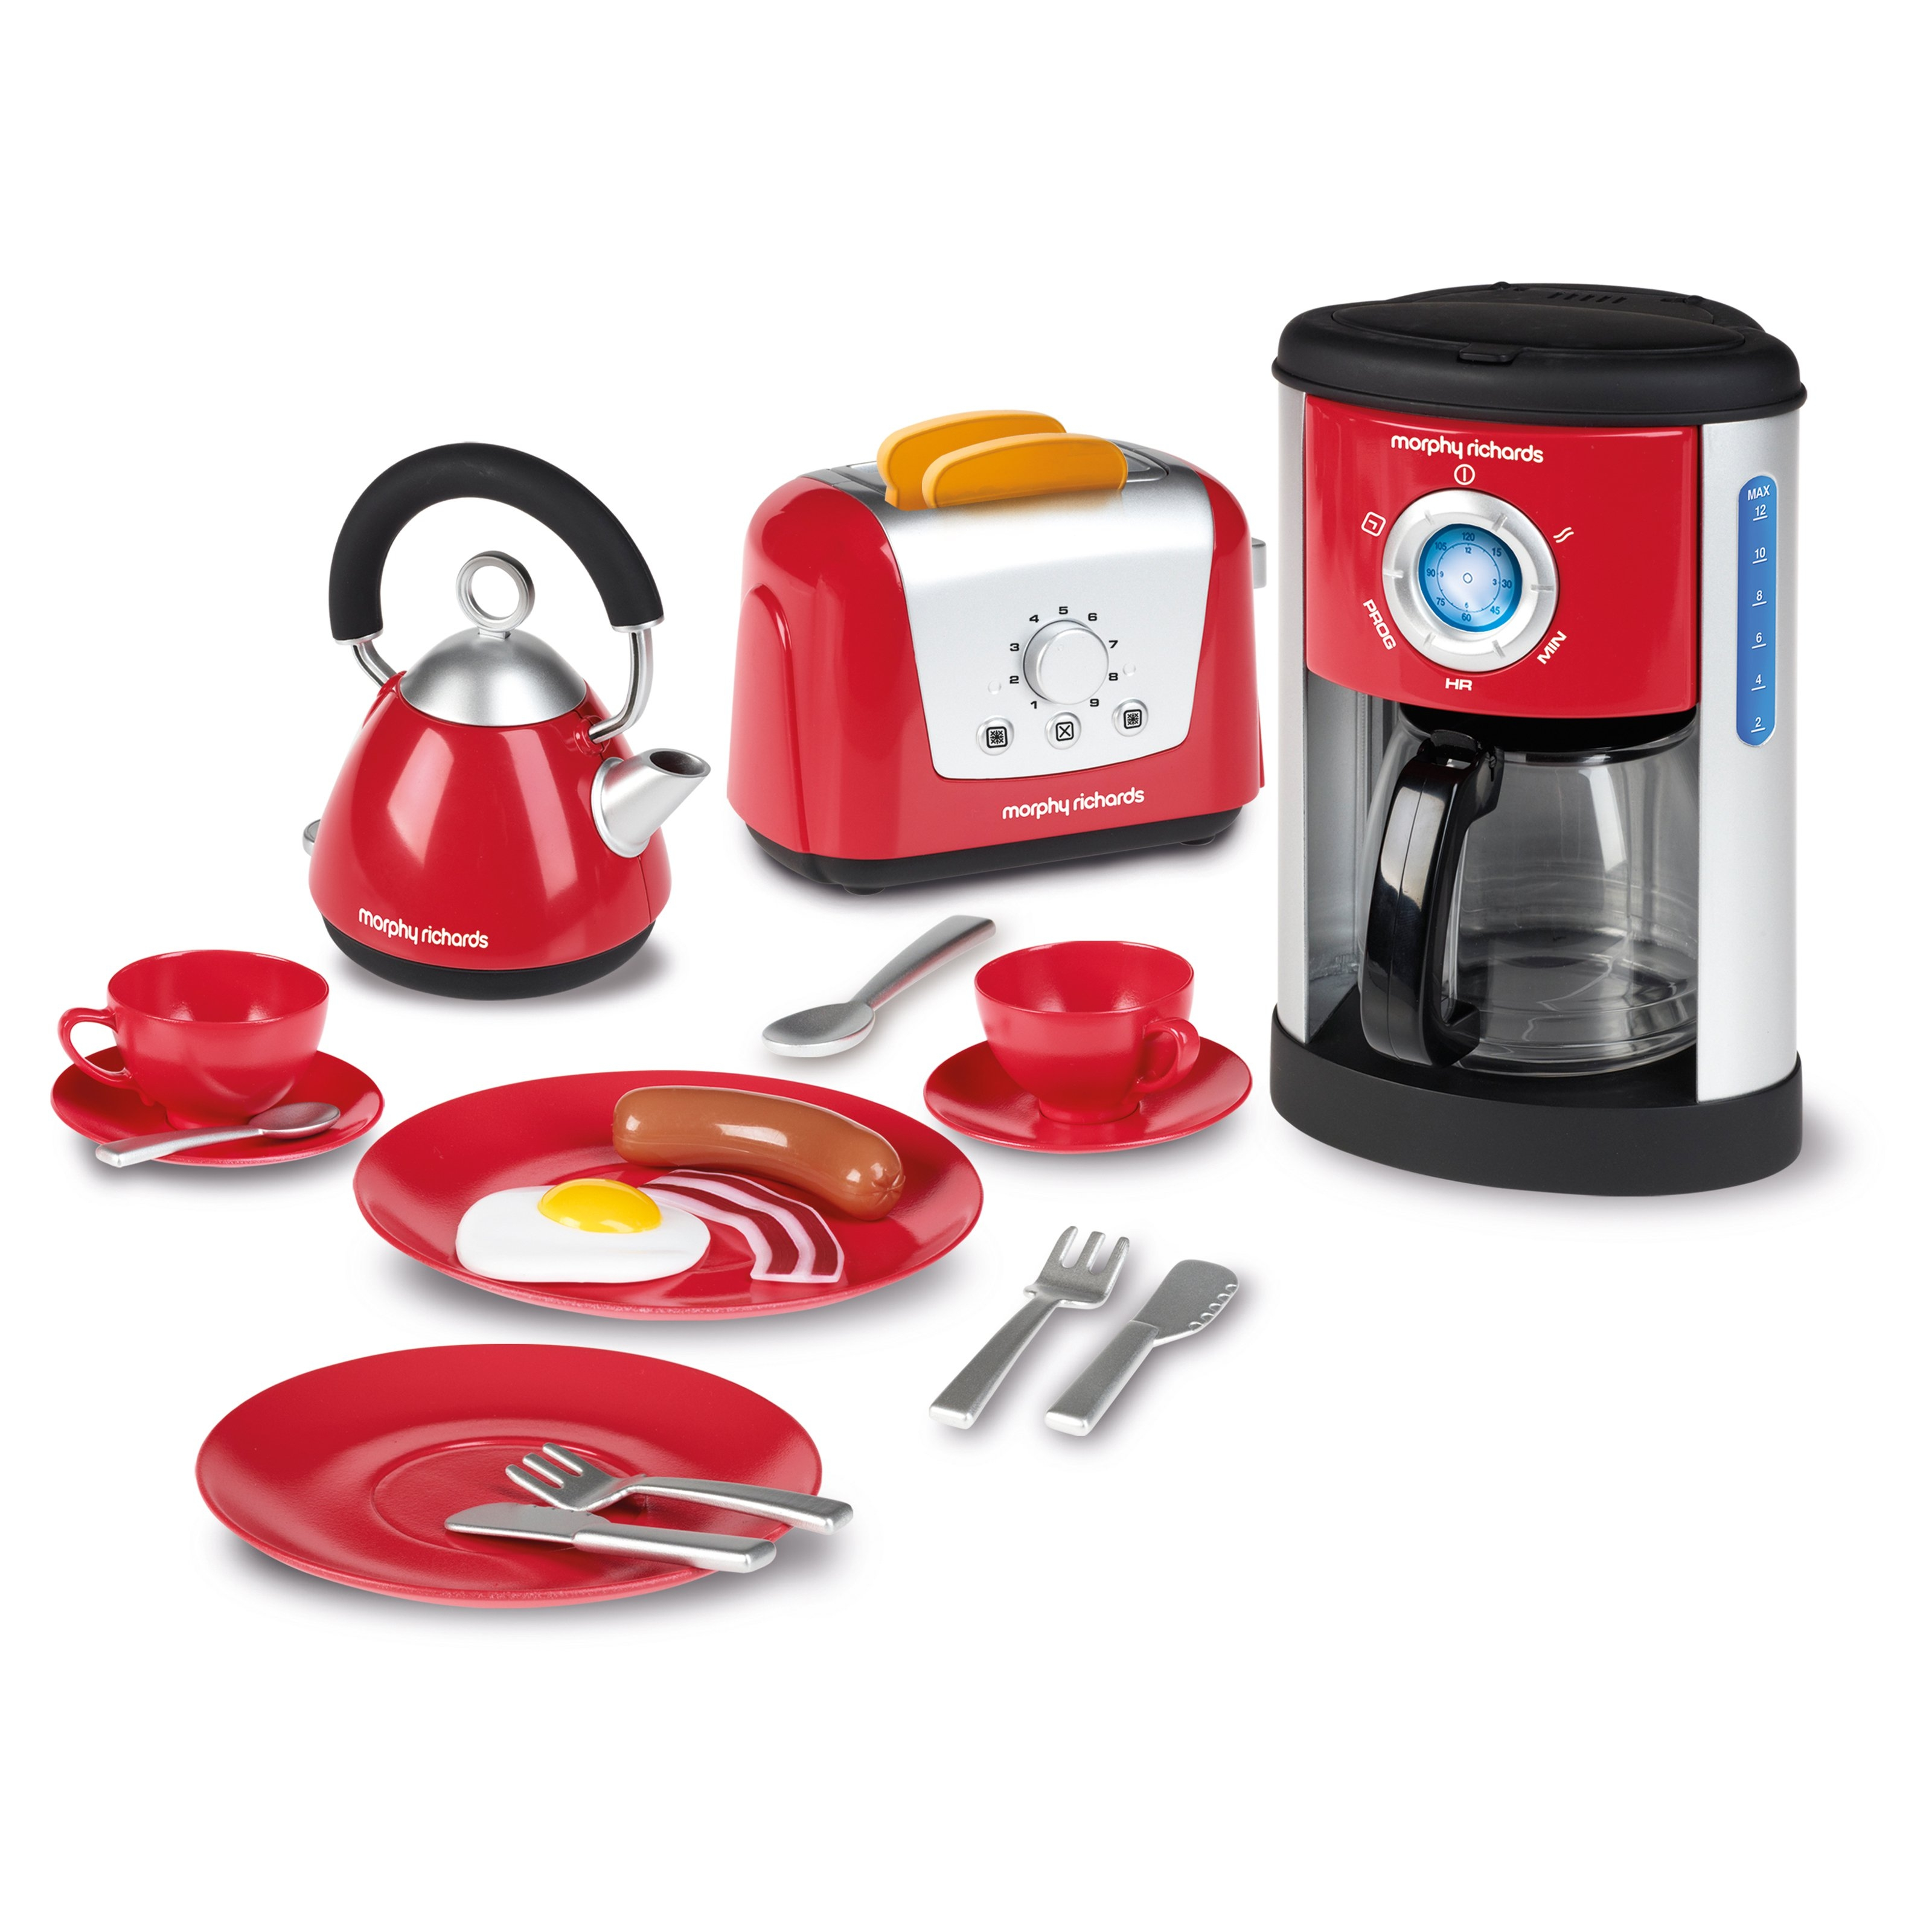 Permalink to Casdon 647 Morphy Richards Kitchen Set